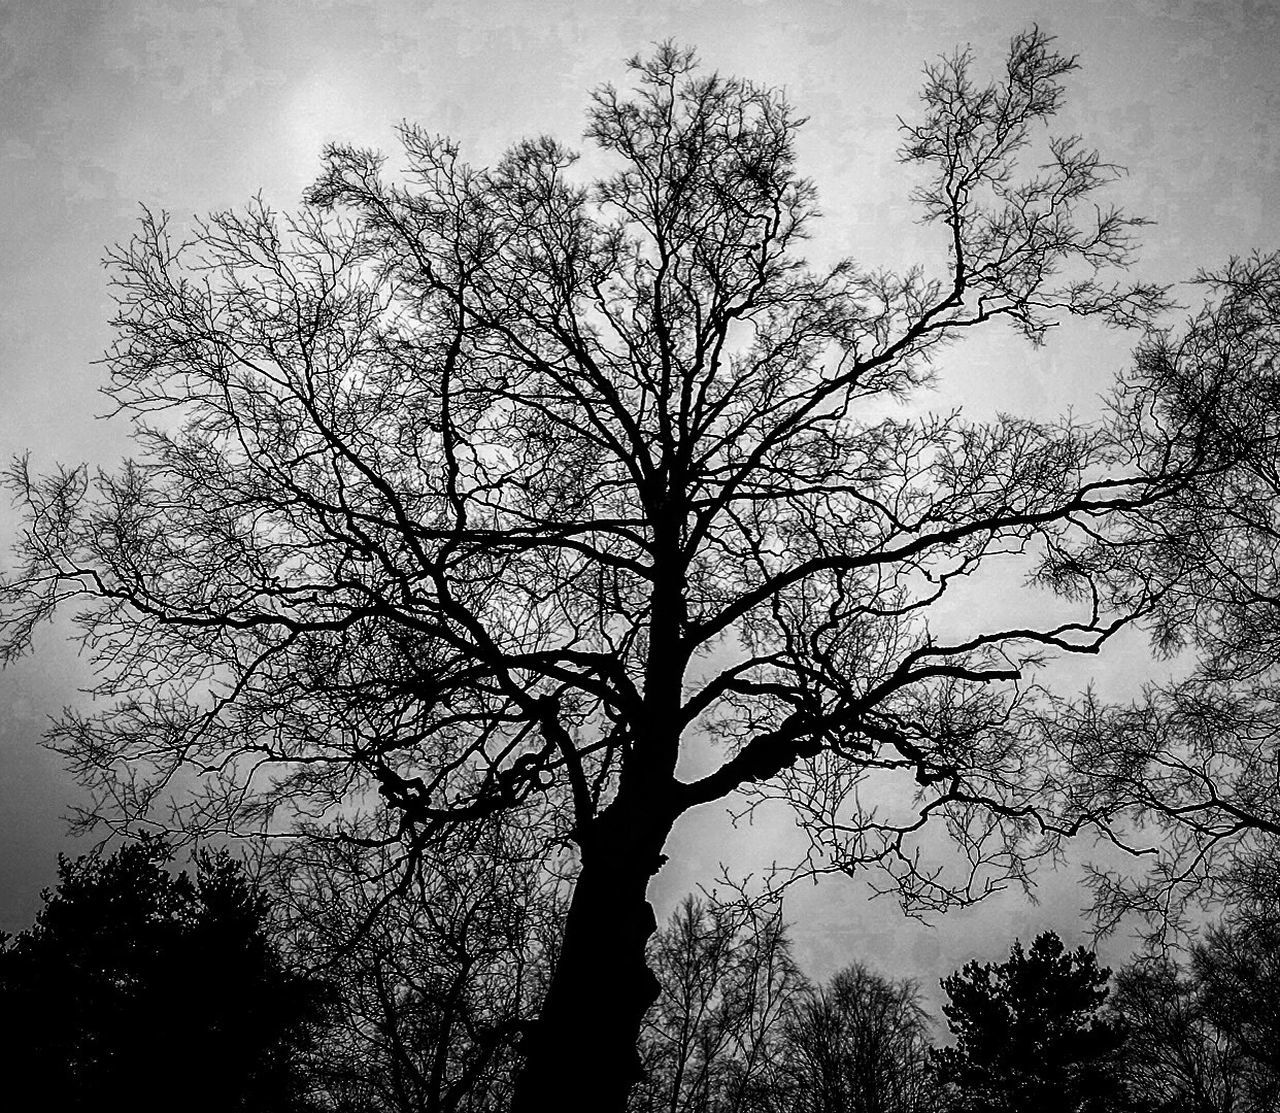 tree, branch, nature, sky, bare tree, growth, beauty in nature, outdoors, low angle view, tranquility, silhouette, landscape, no people, scenics, day